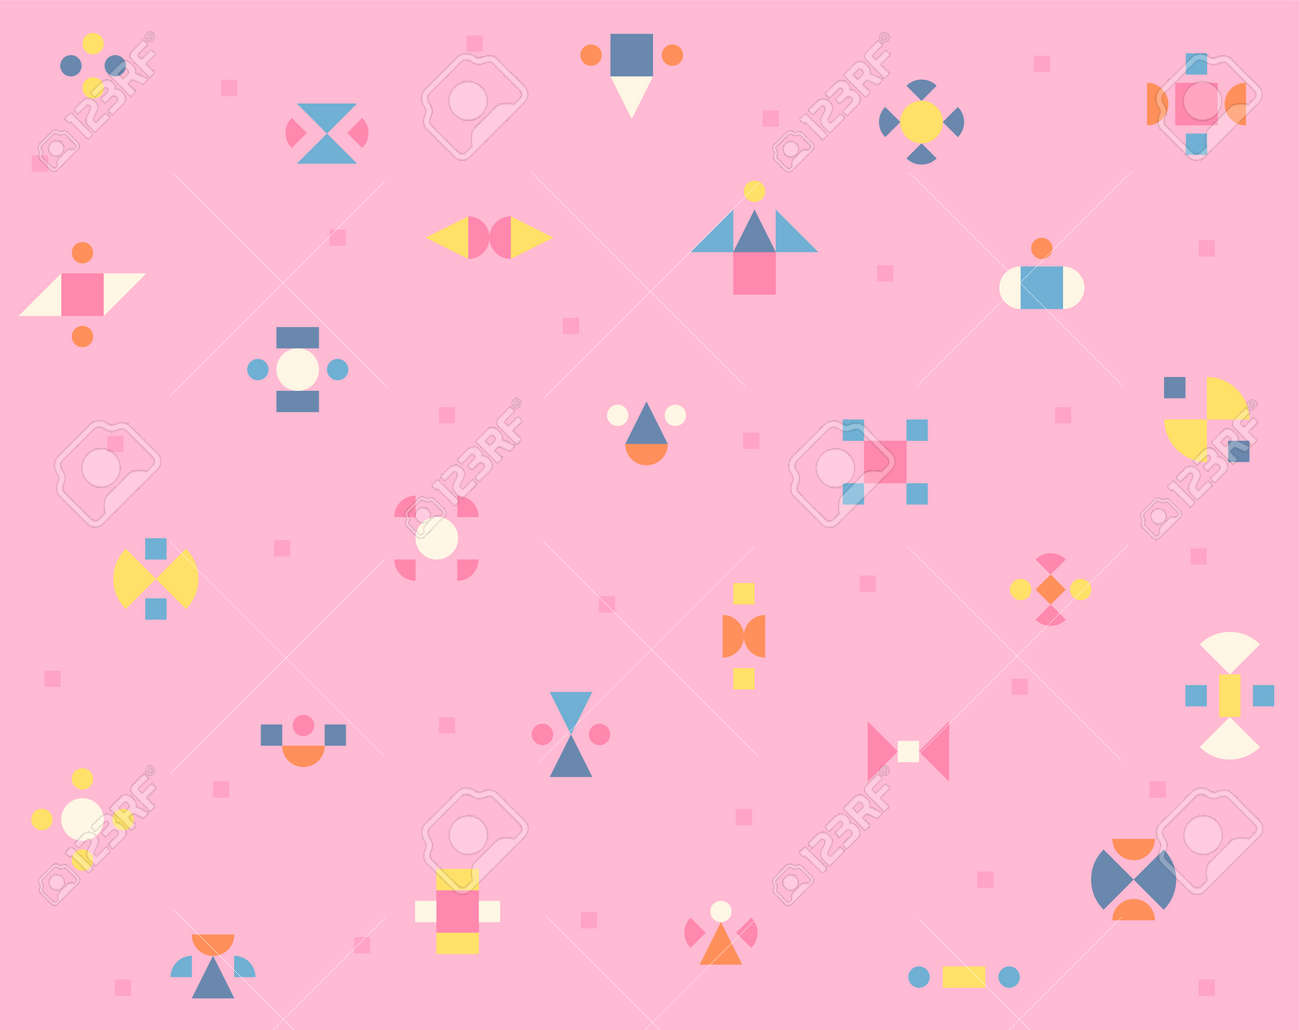 On a pink background, small pieces of shapes are making a kaleidoscope-like pattern. Simple pattern design template. - 172584612